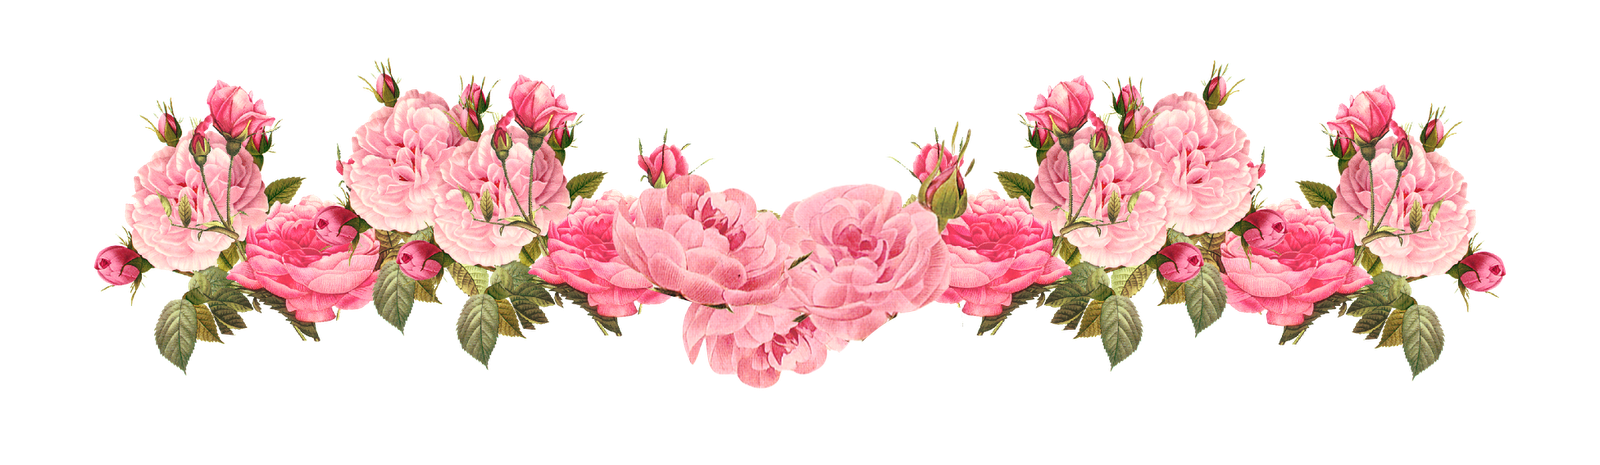 Vintage Pink Rose Border Png 33548 Free Icons And Png Backgrounds